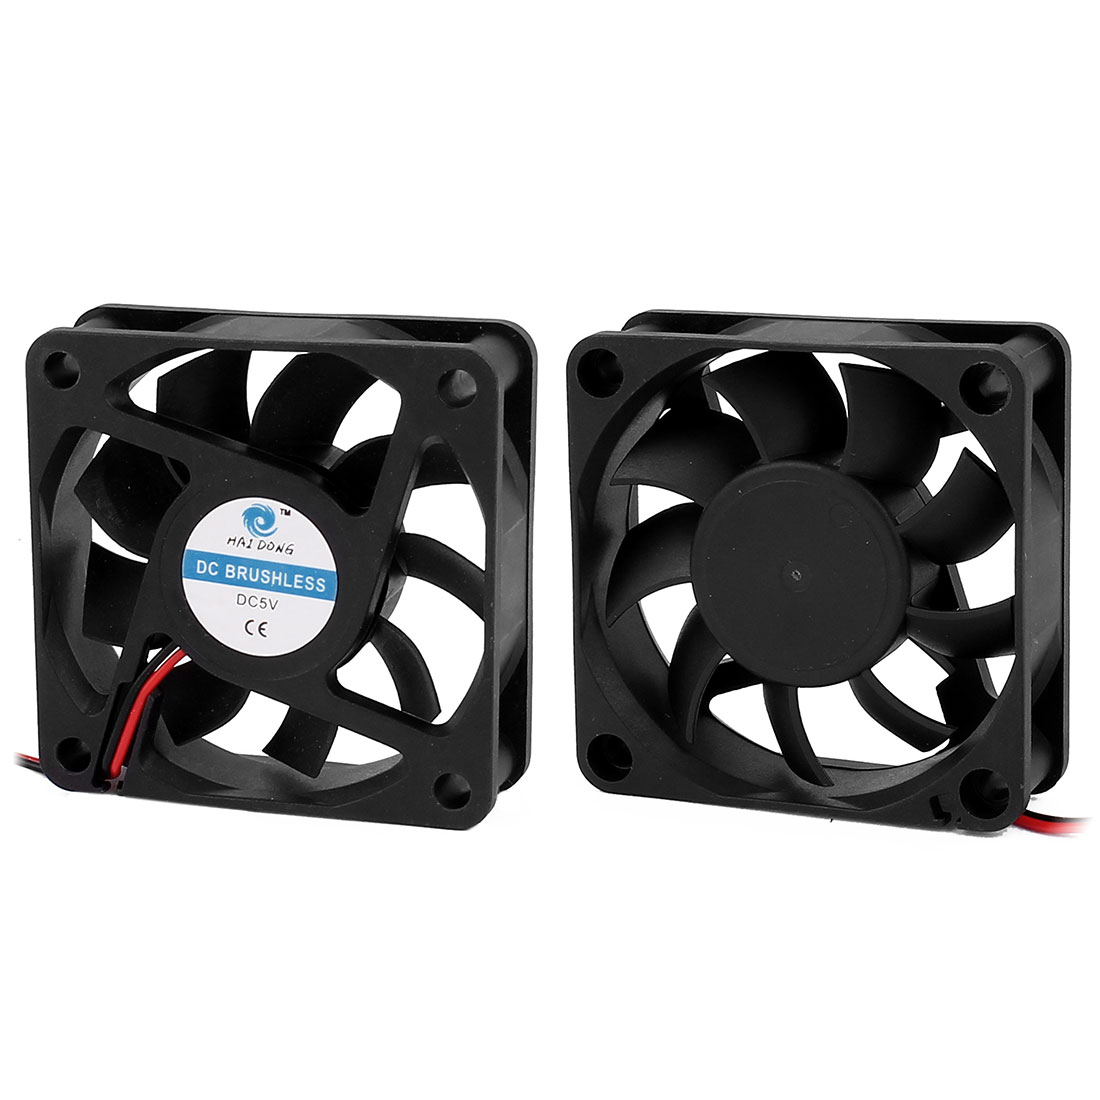 2Pcs DC 5V 0.15A Extractor Cooling Fan 60 x 15mm for PC Computer Case CPU Cooler